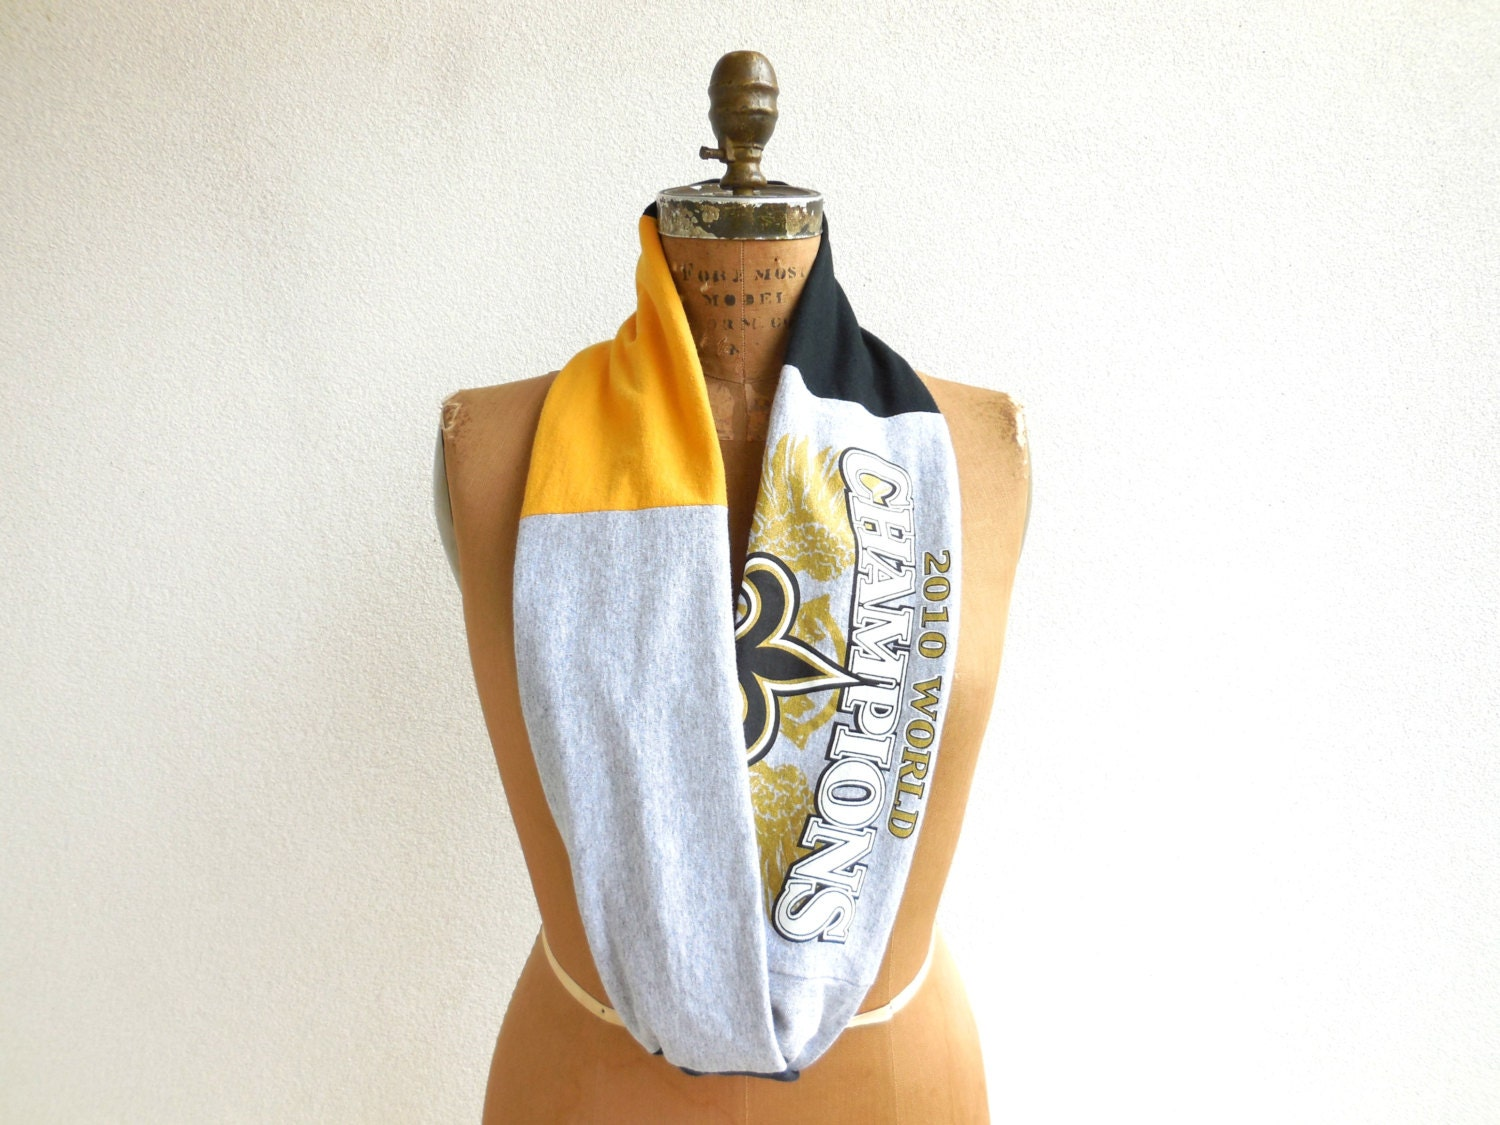 new orleans saints t shirt scarf black gold gray infinity